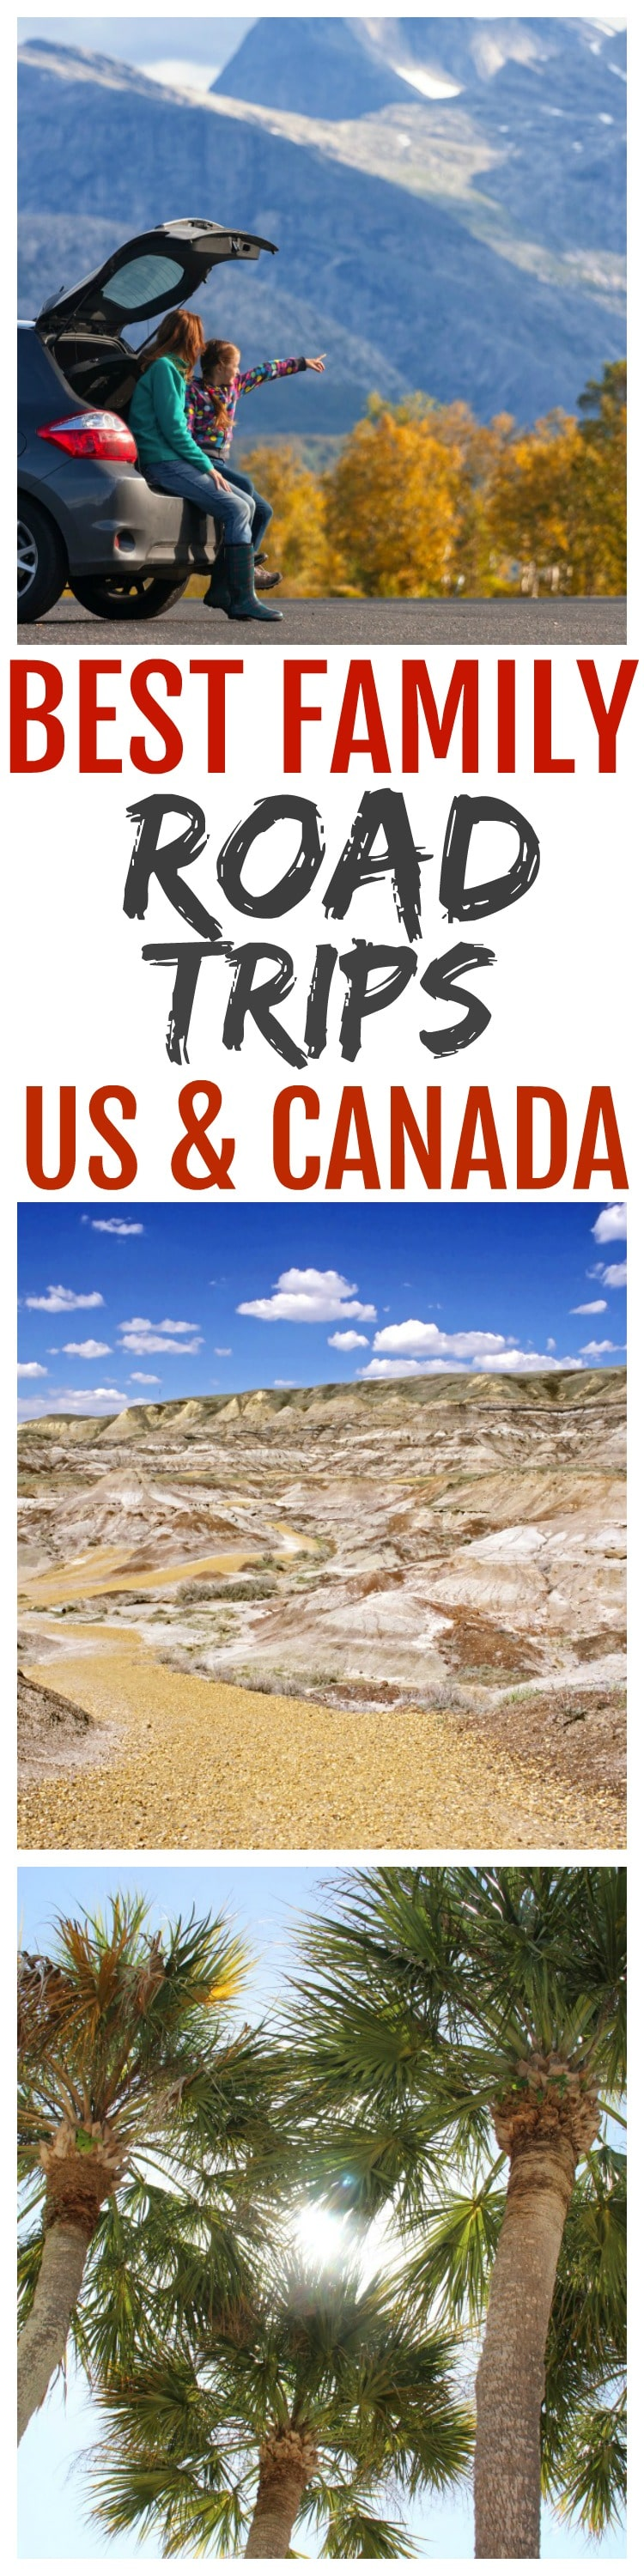 Best family road trips us and canada